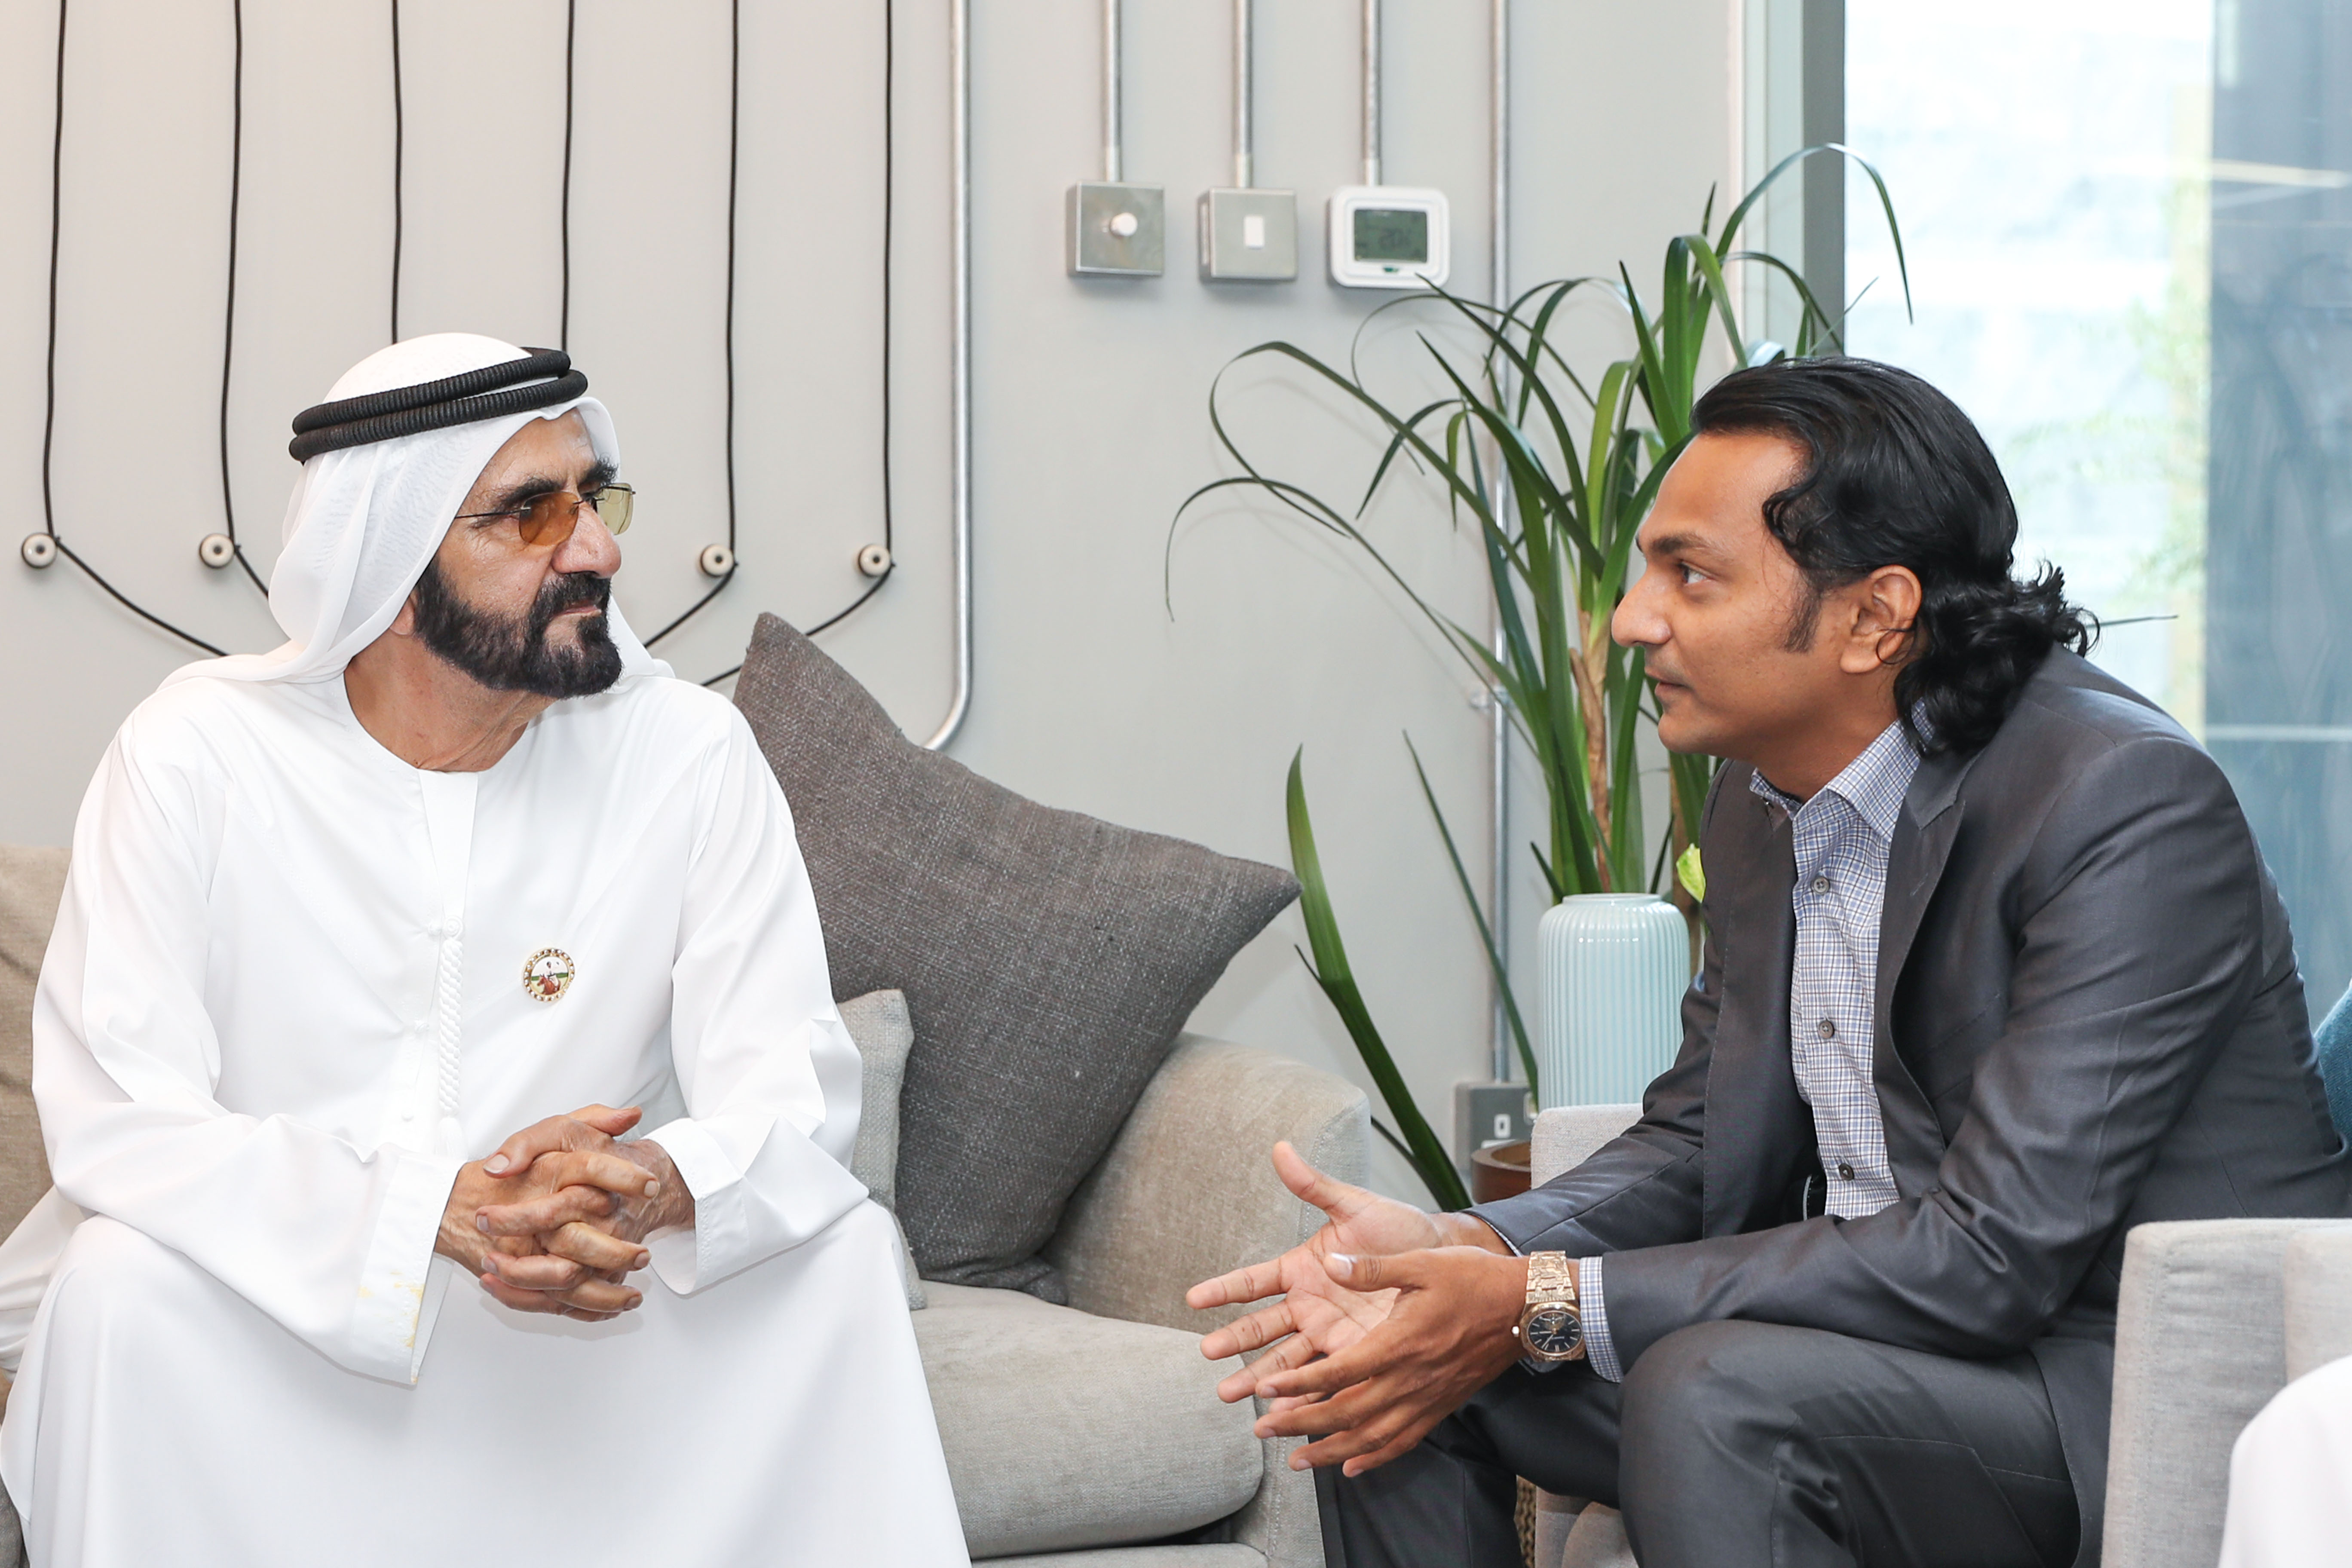 Dubai Ruler Sheikh Mohammed Meets The Self-Made Billionaire Who Made His First Million at 18